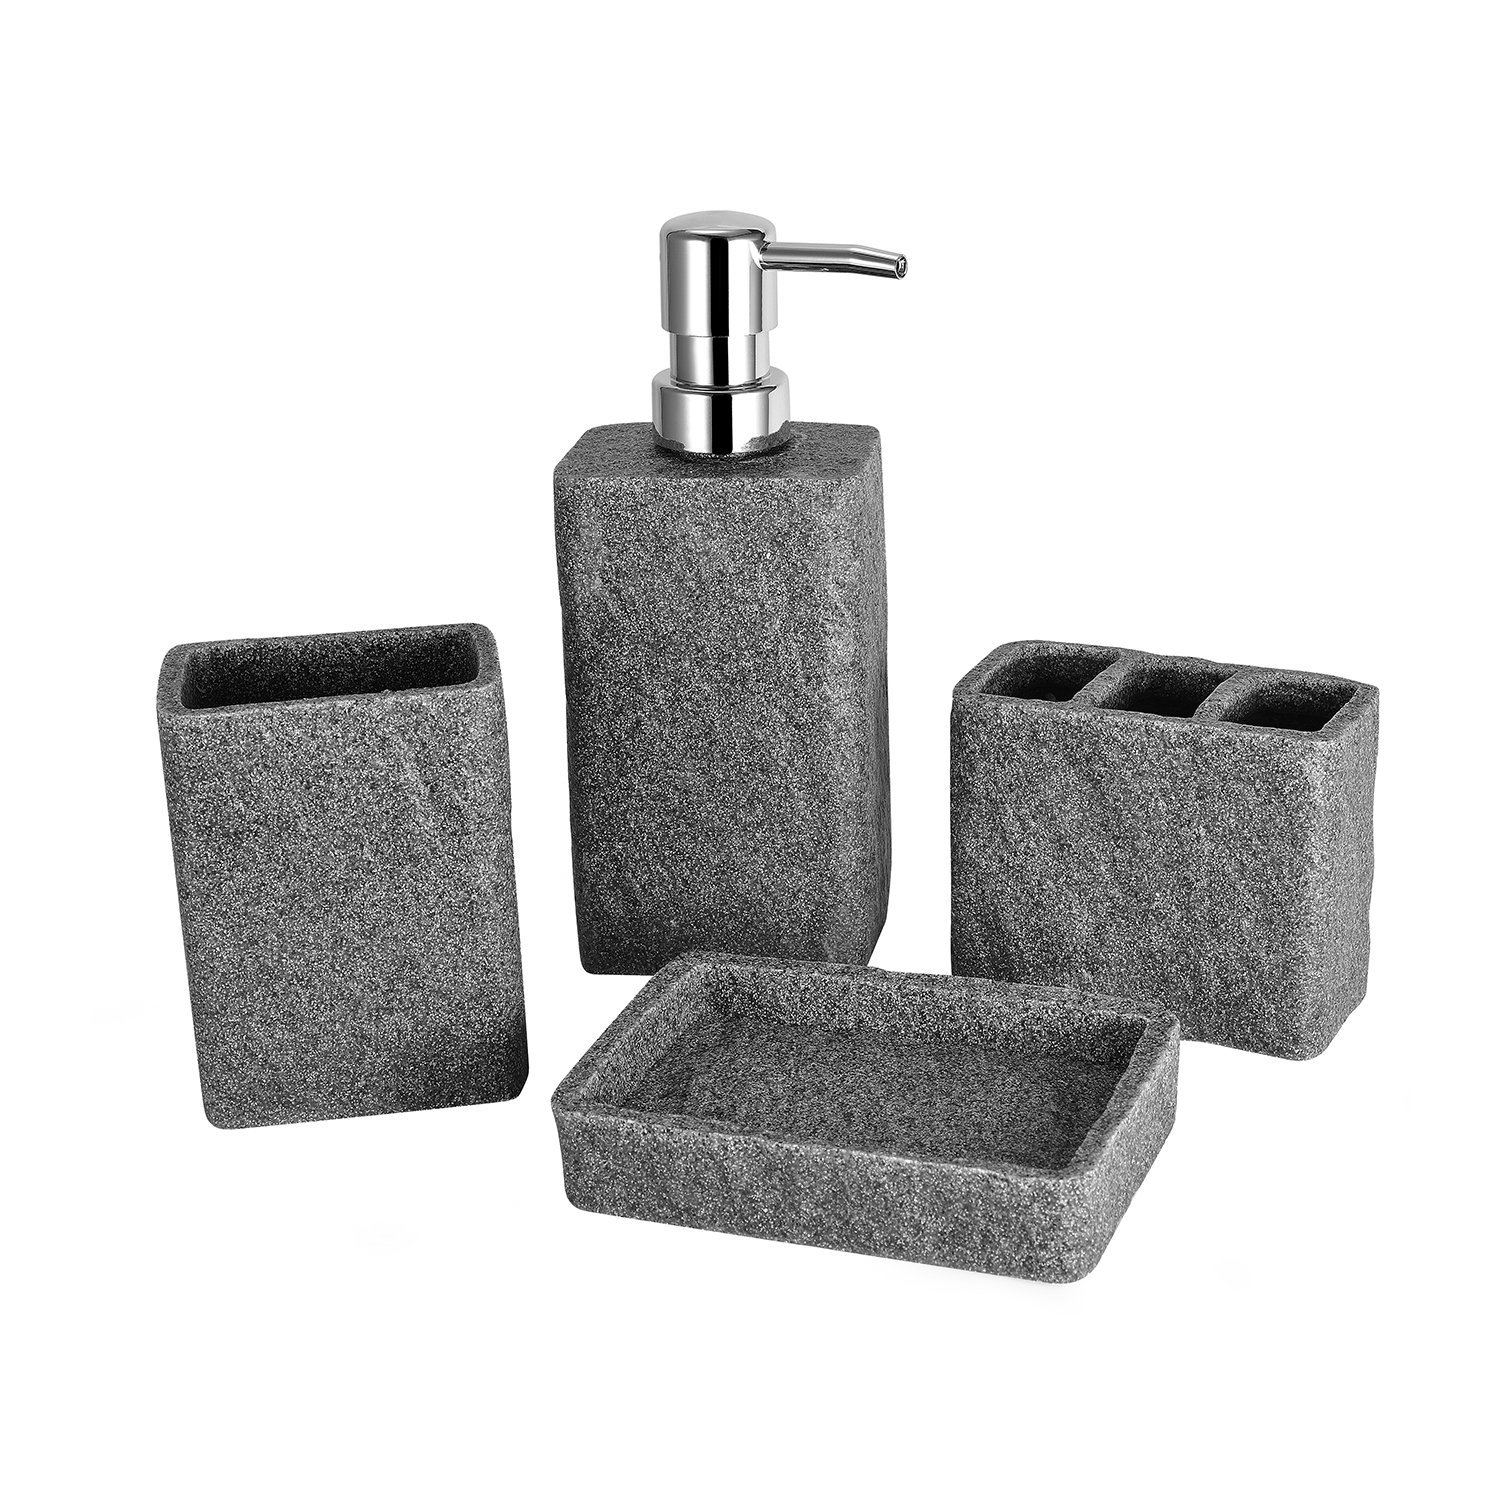 TTOYOUU 4pcs Grey Bath Accessory Set, Stone Textured Resin Soap Dish, Soap Dispenser,Toothbrush Holder & Tumbler Bath Ensemble Bathroom Accessory Collection Set